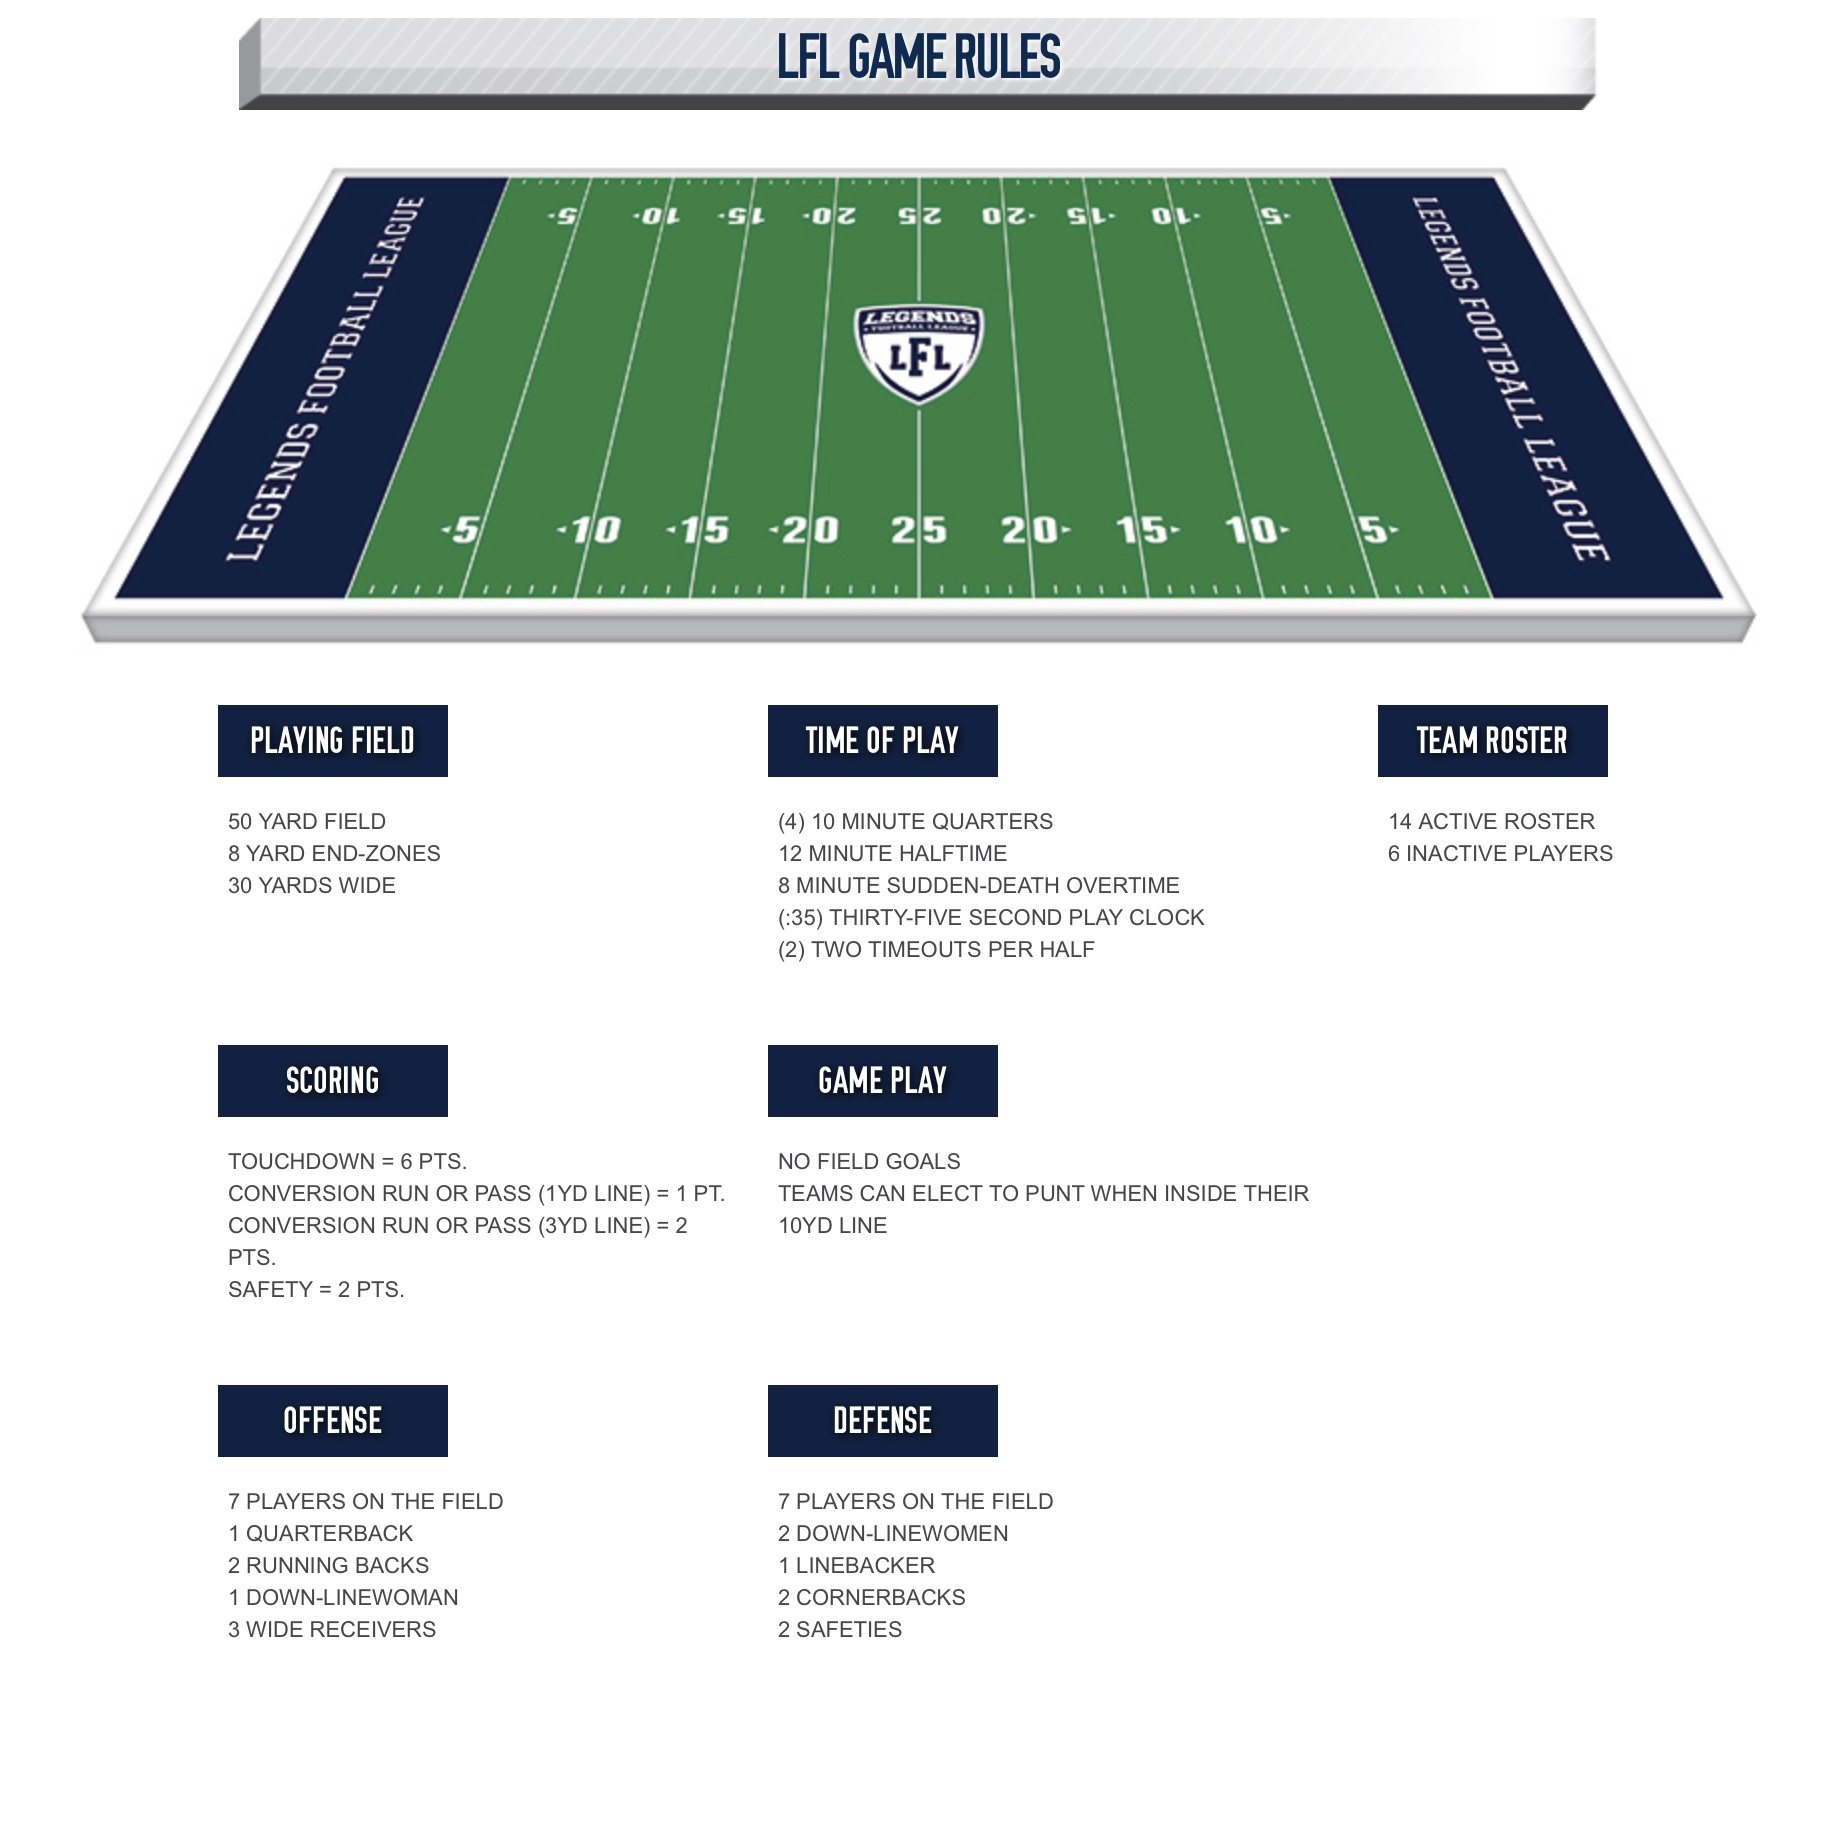 LFL Game Rules